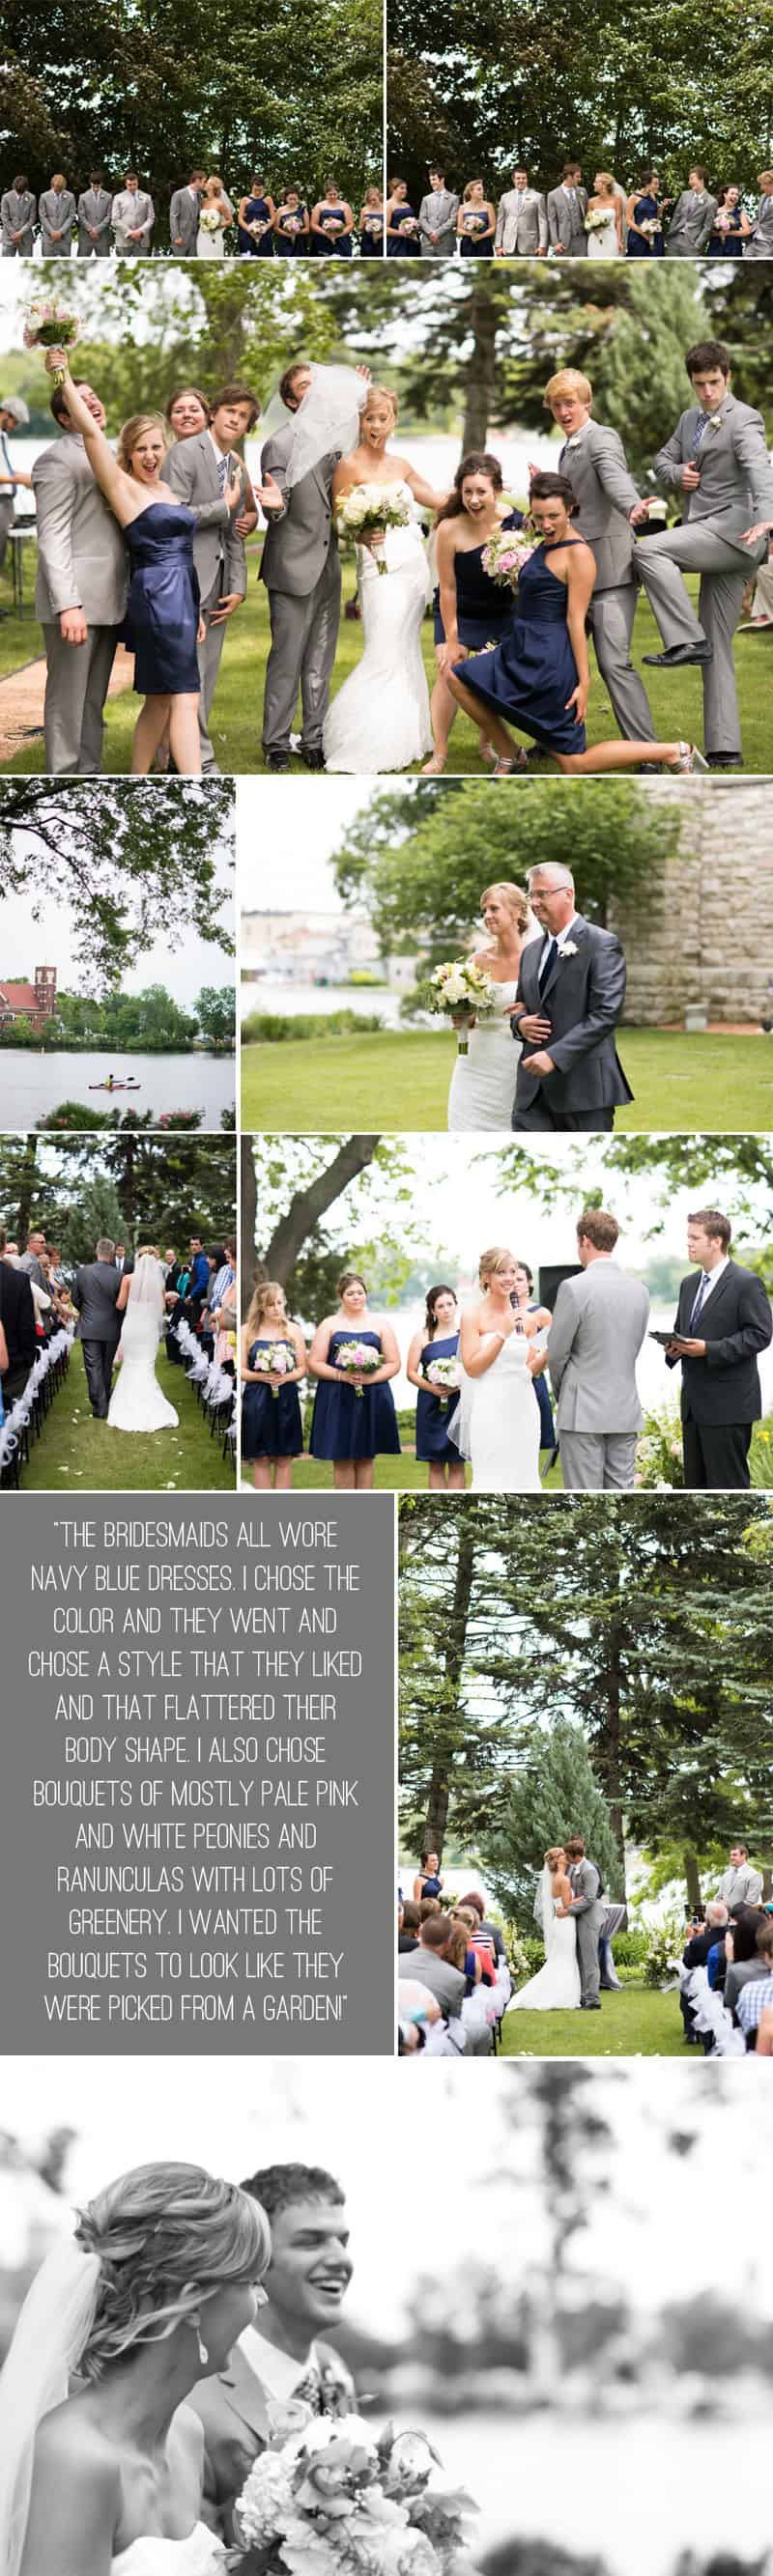 Outdoor Garden Wedding 3